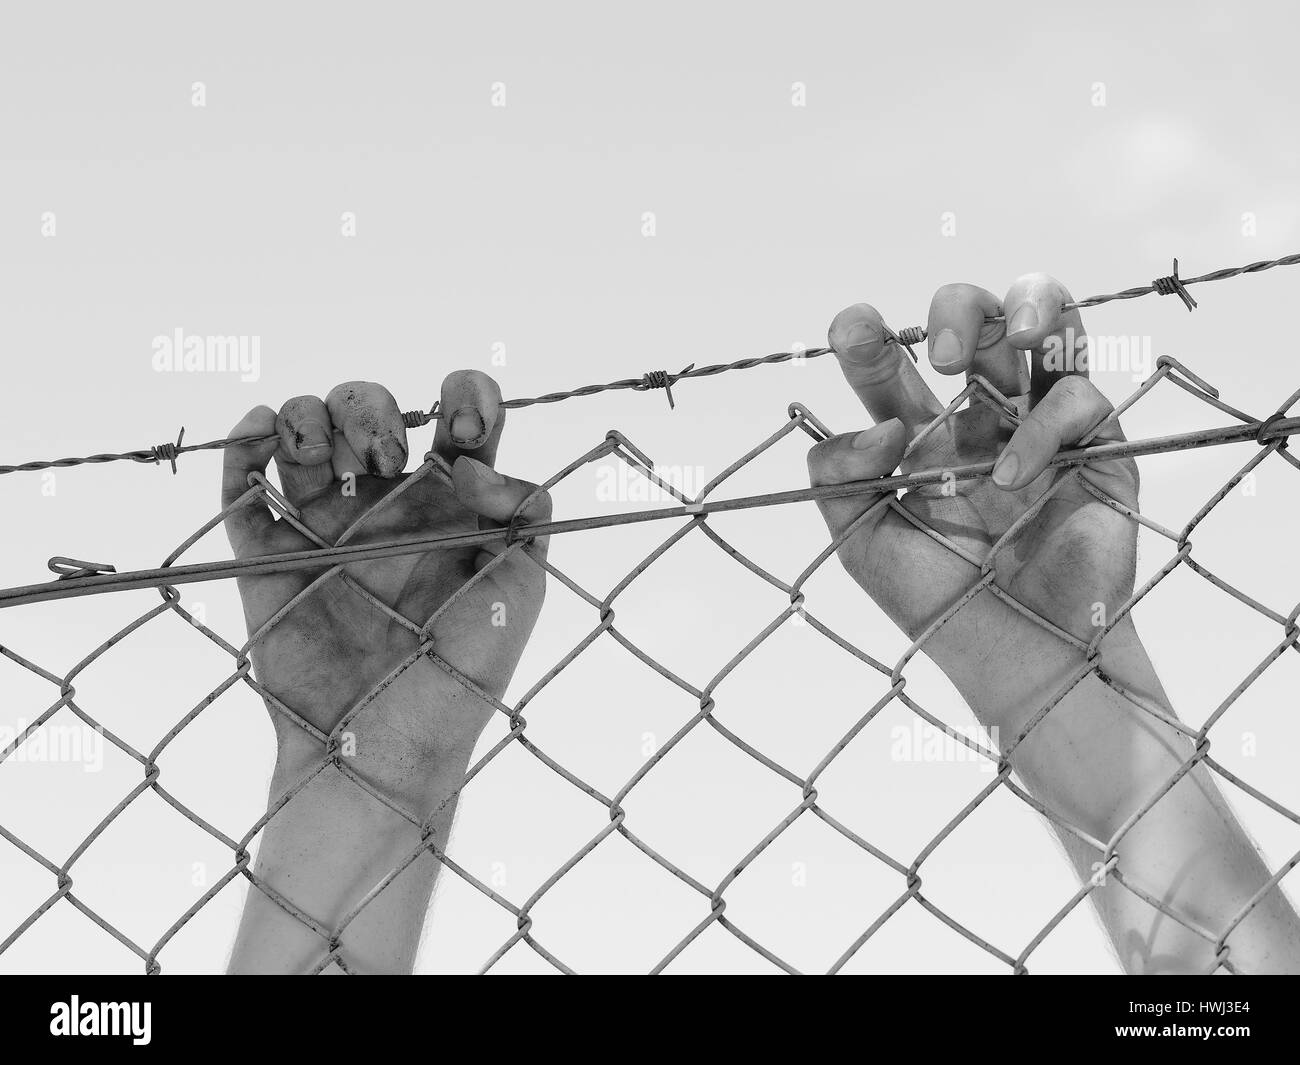 Barbed Wire Fences. Barbed Wire Fences I - Mathszone.co